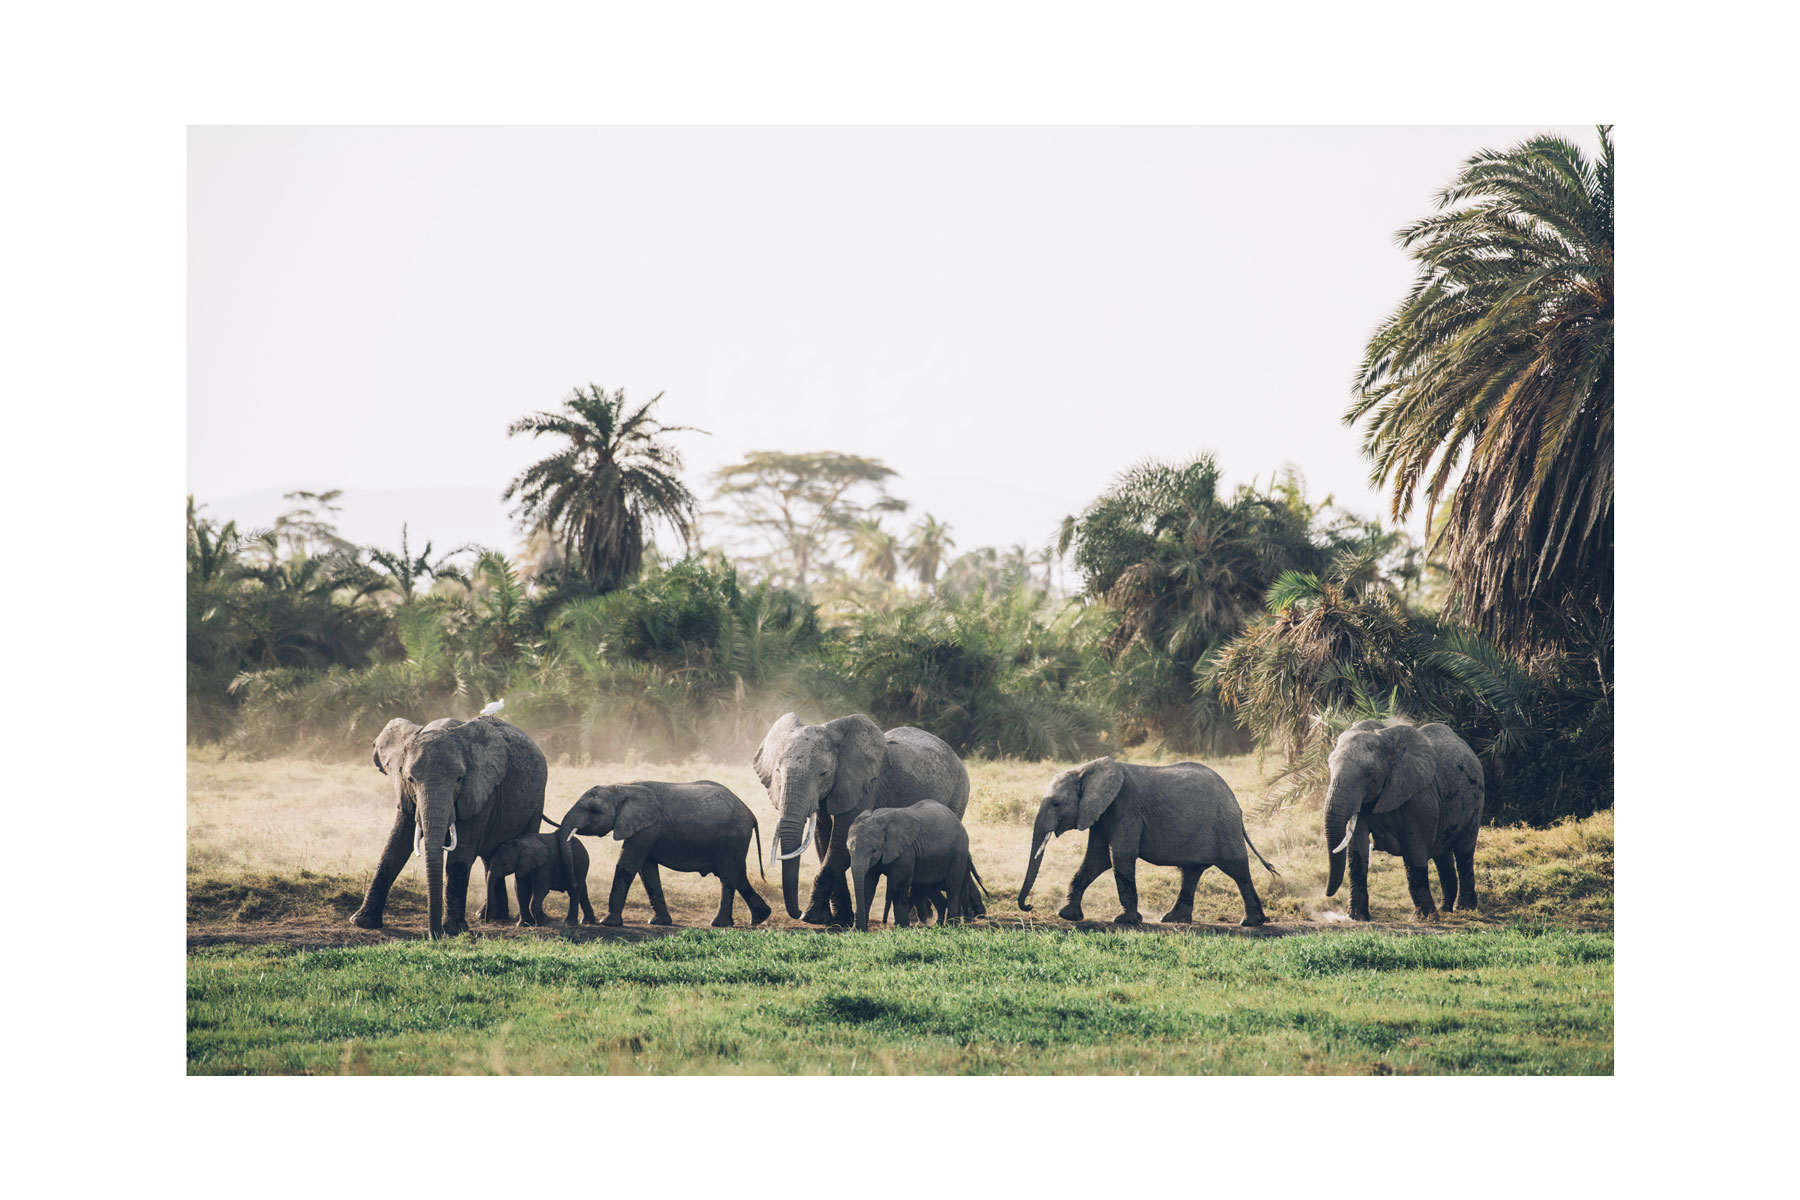 Eléphants, Parc National Amboseli, Kenya